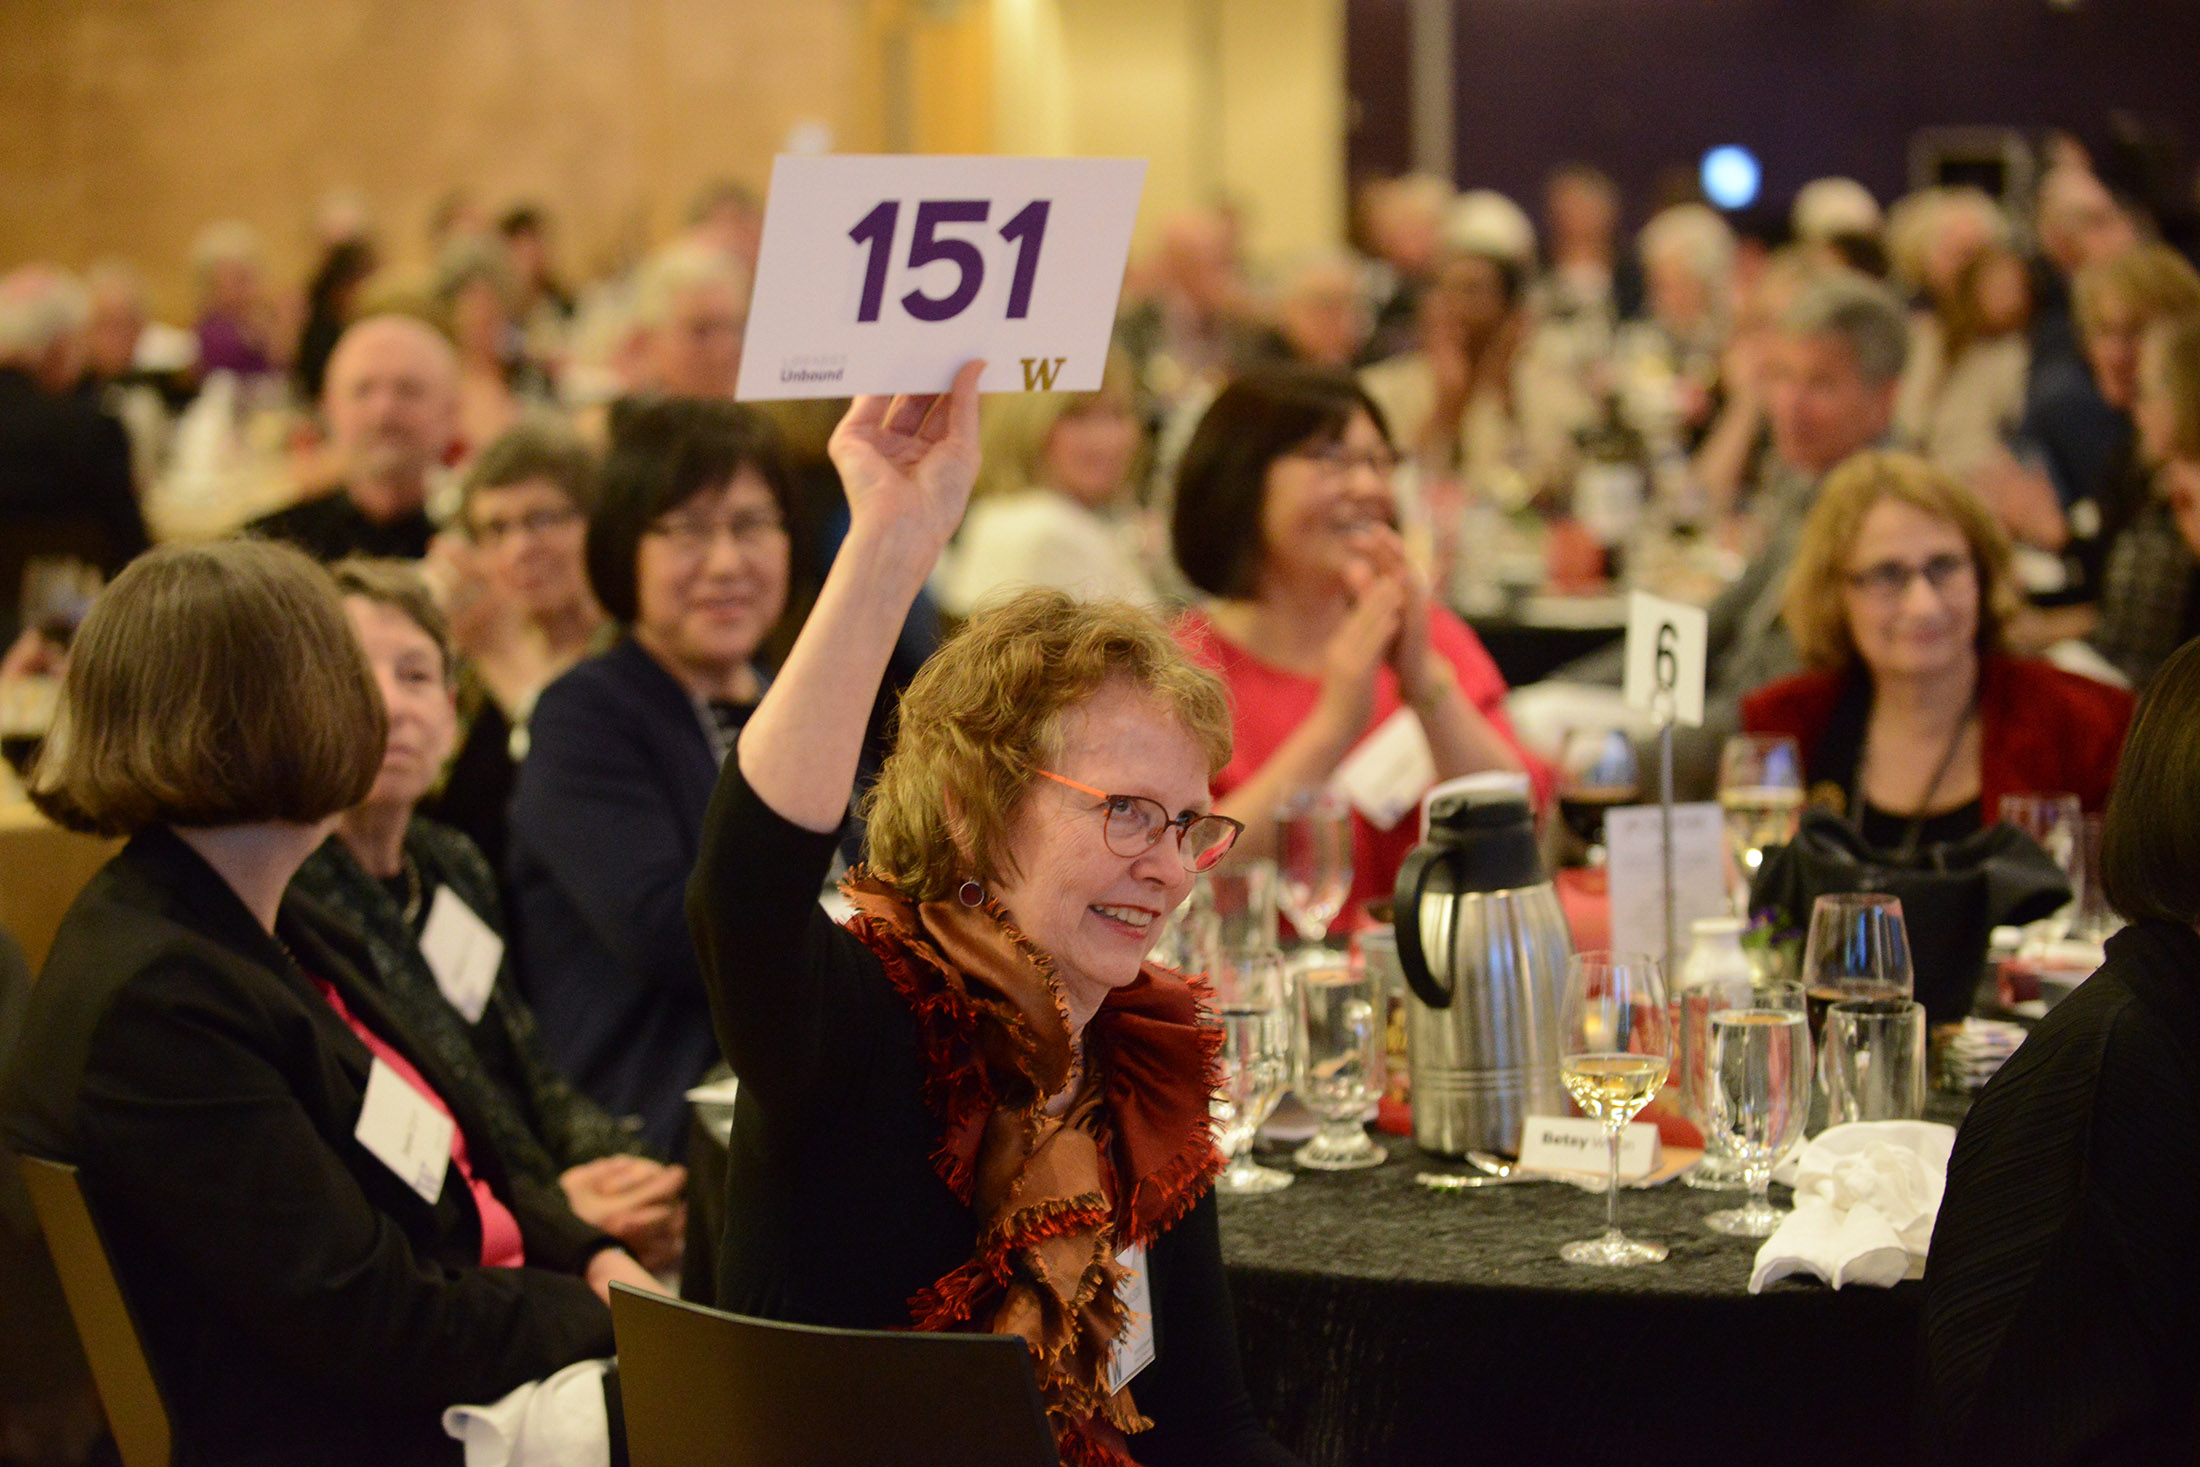 Libraries Unbound guests seated at a table